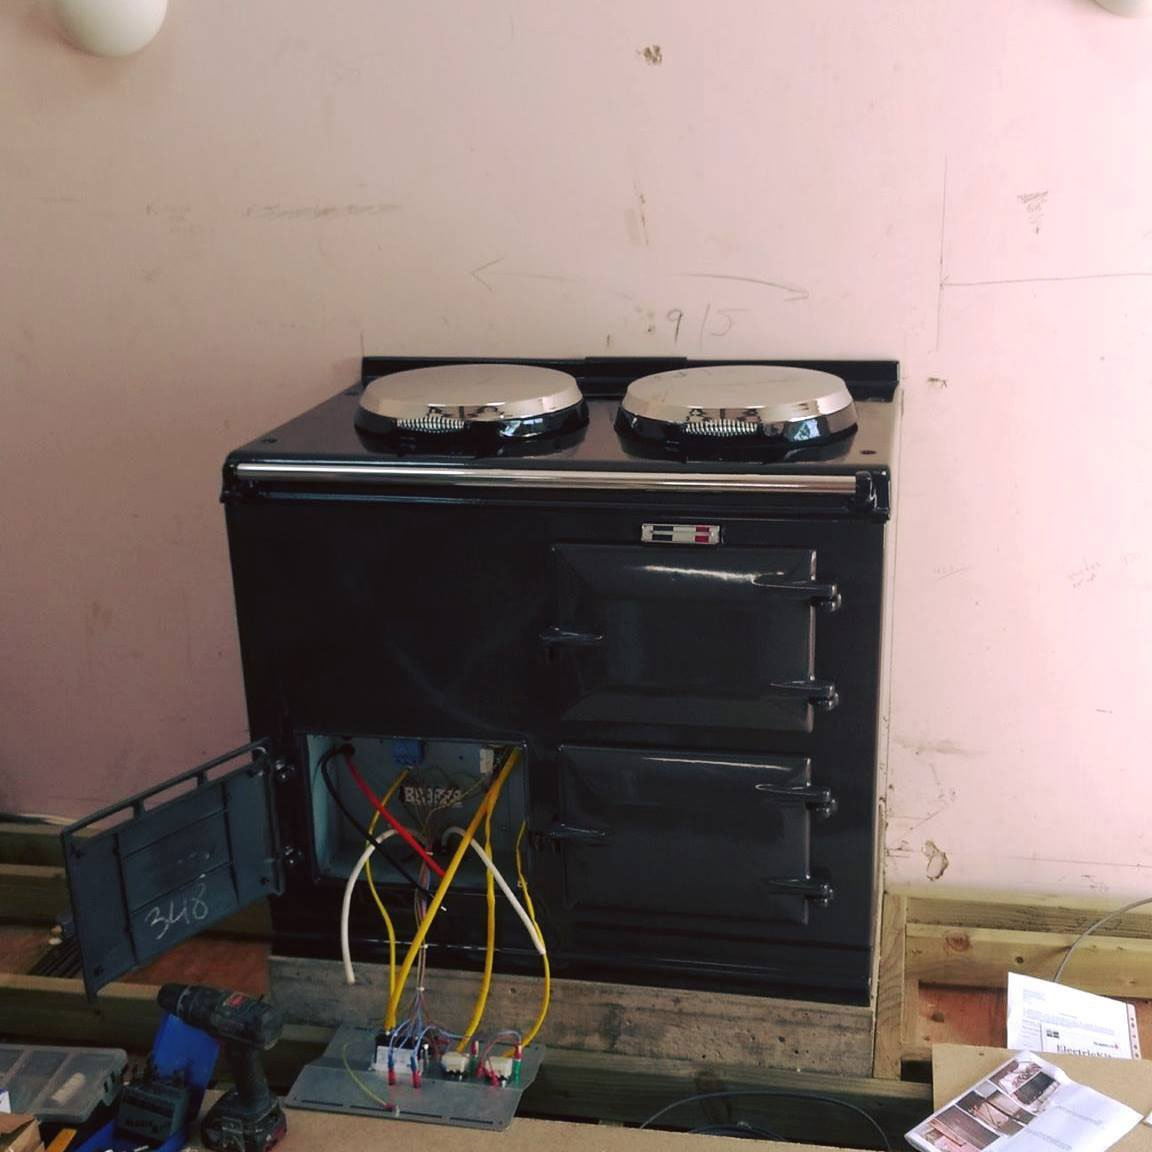 Aga range cooker in process of conversion